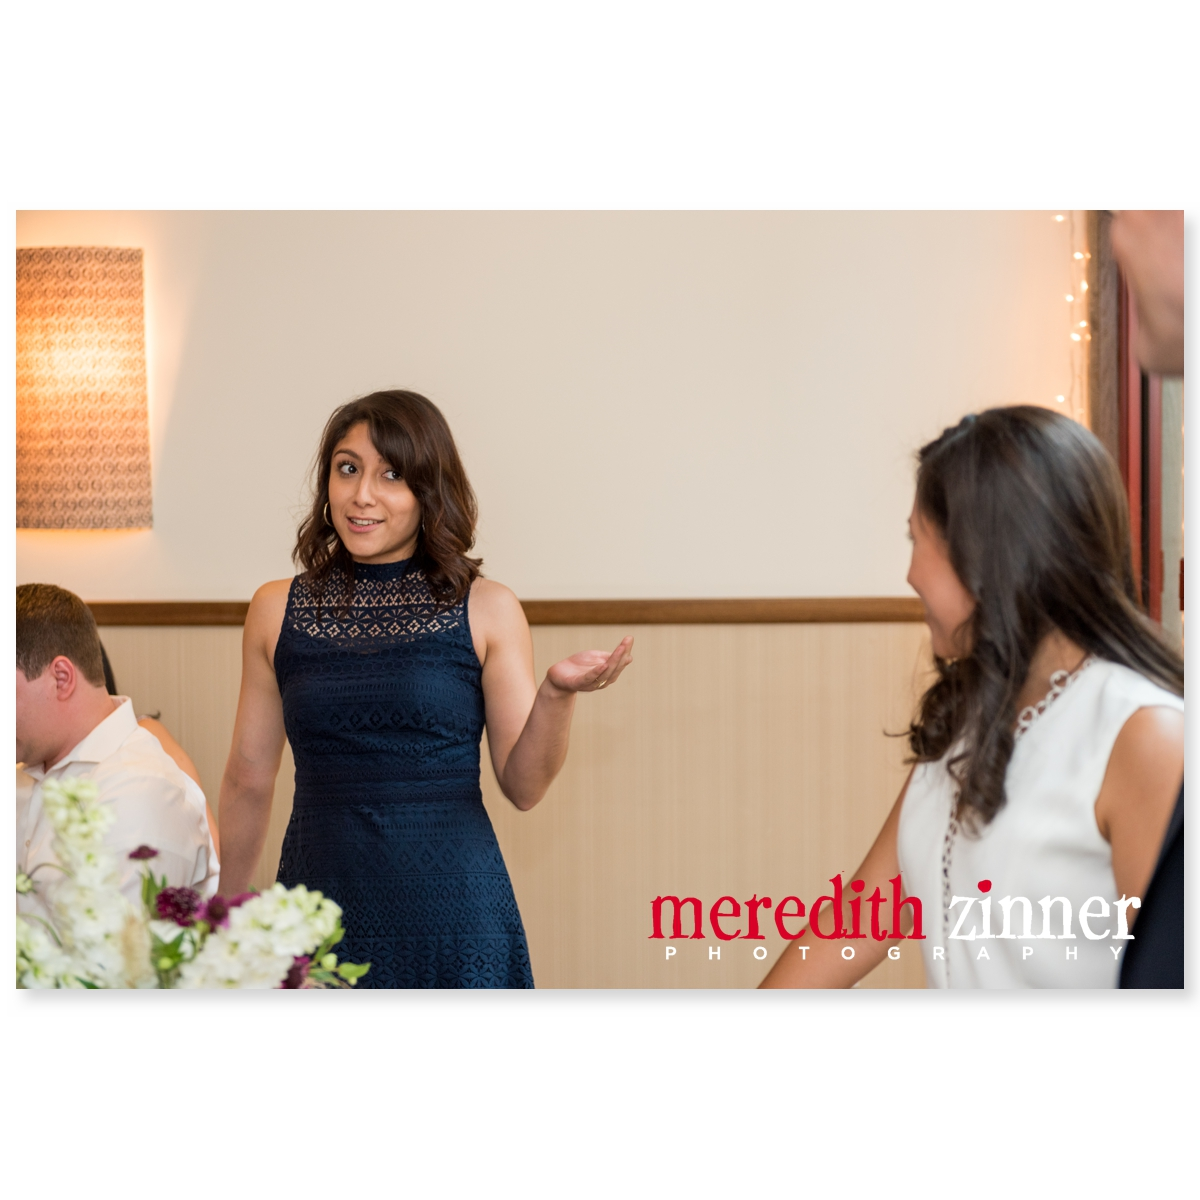 Meredith_Zinner_Photography_StilesCelebration_0200